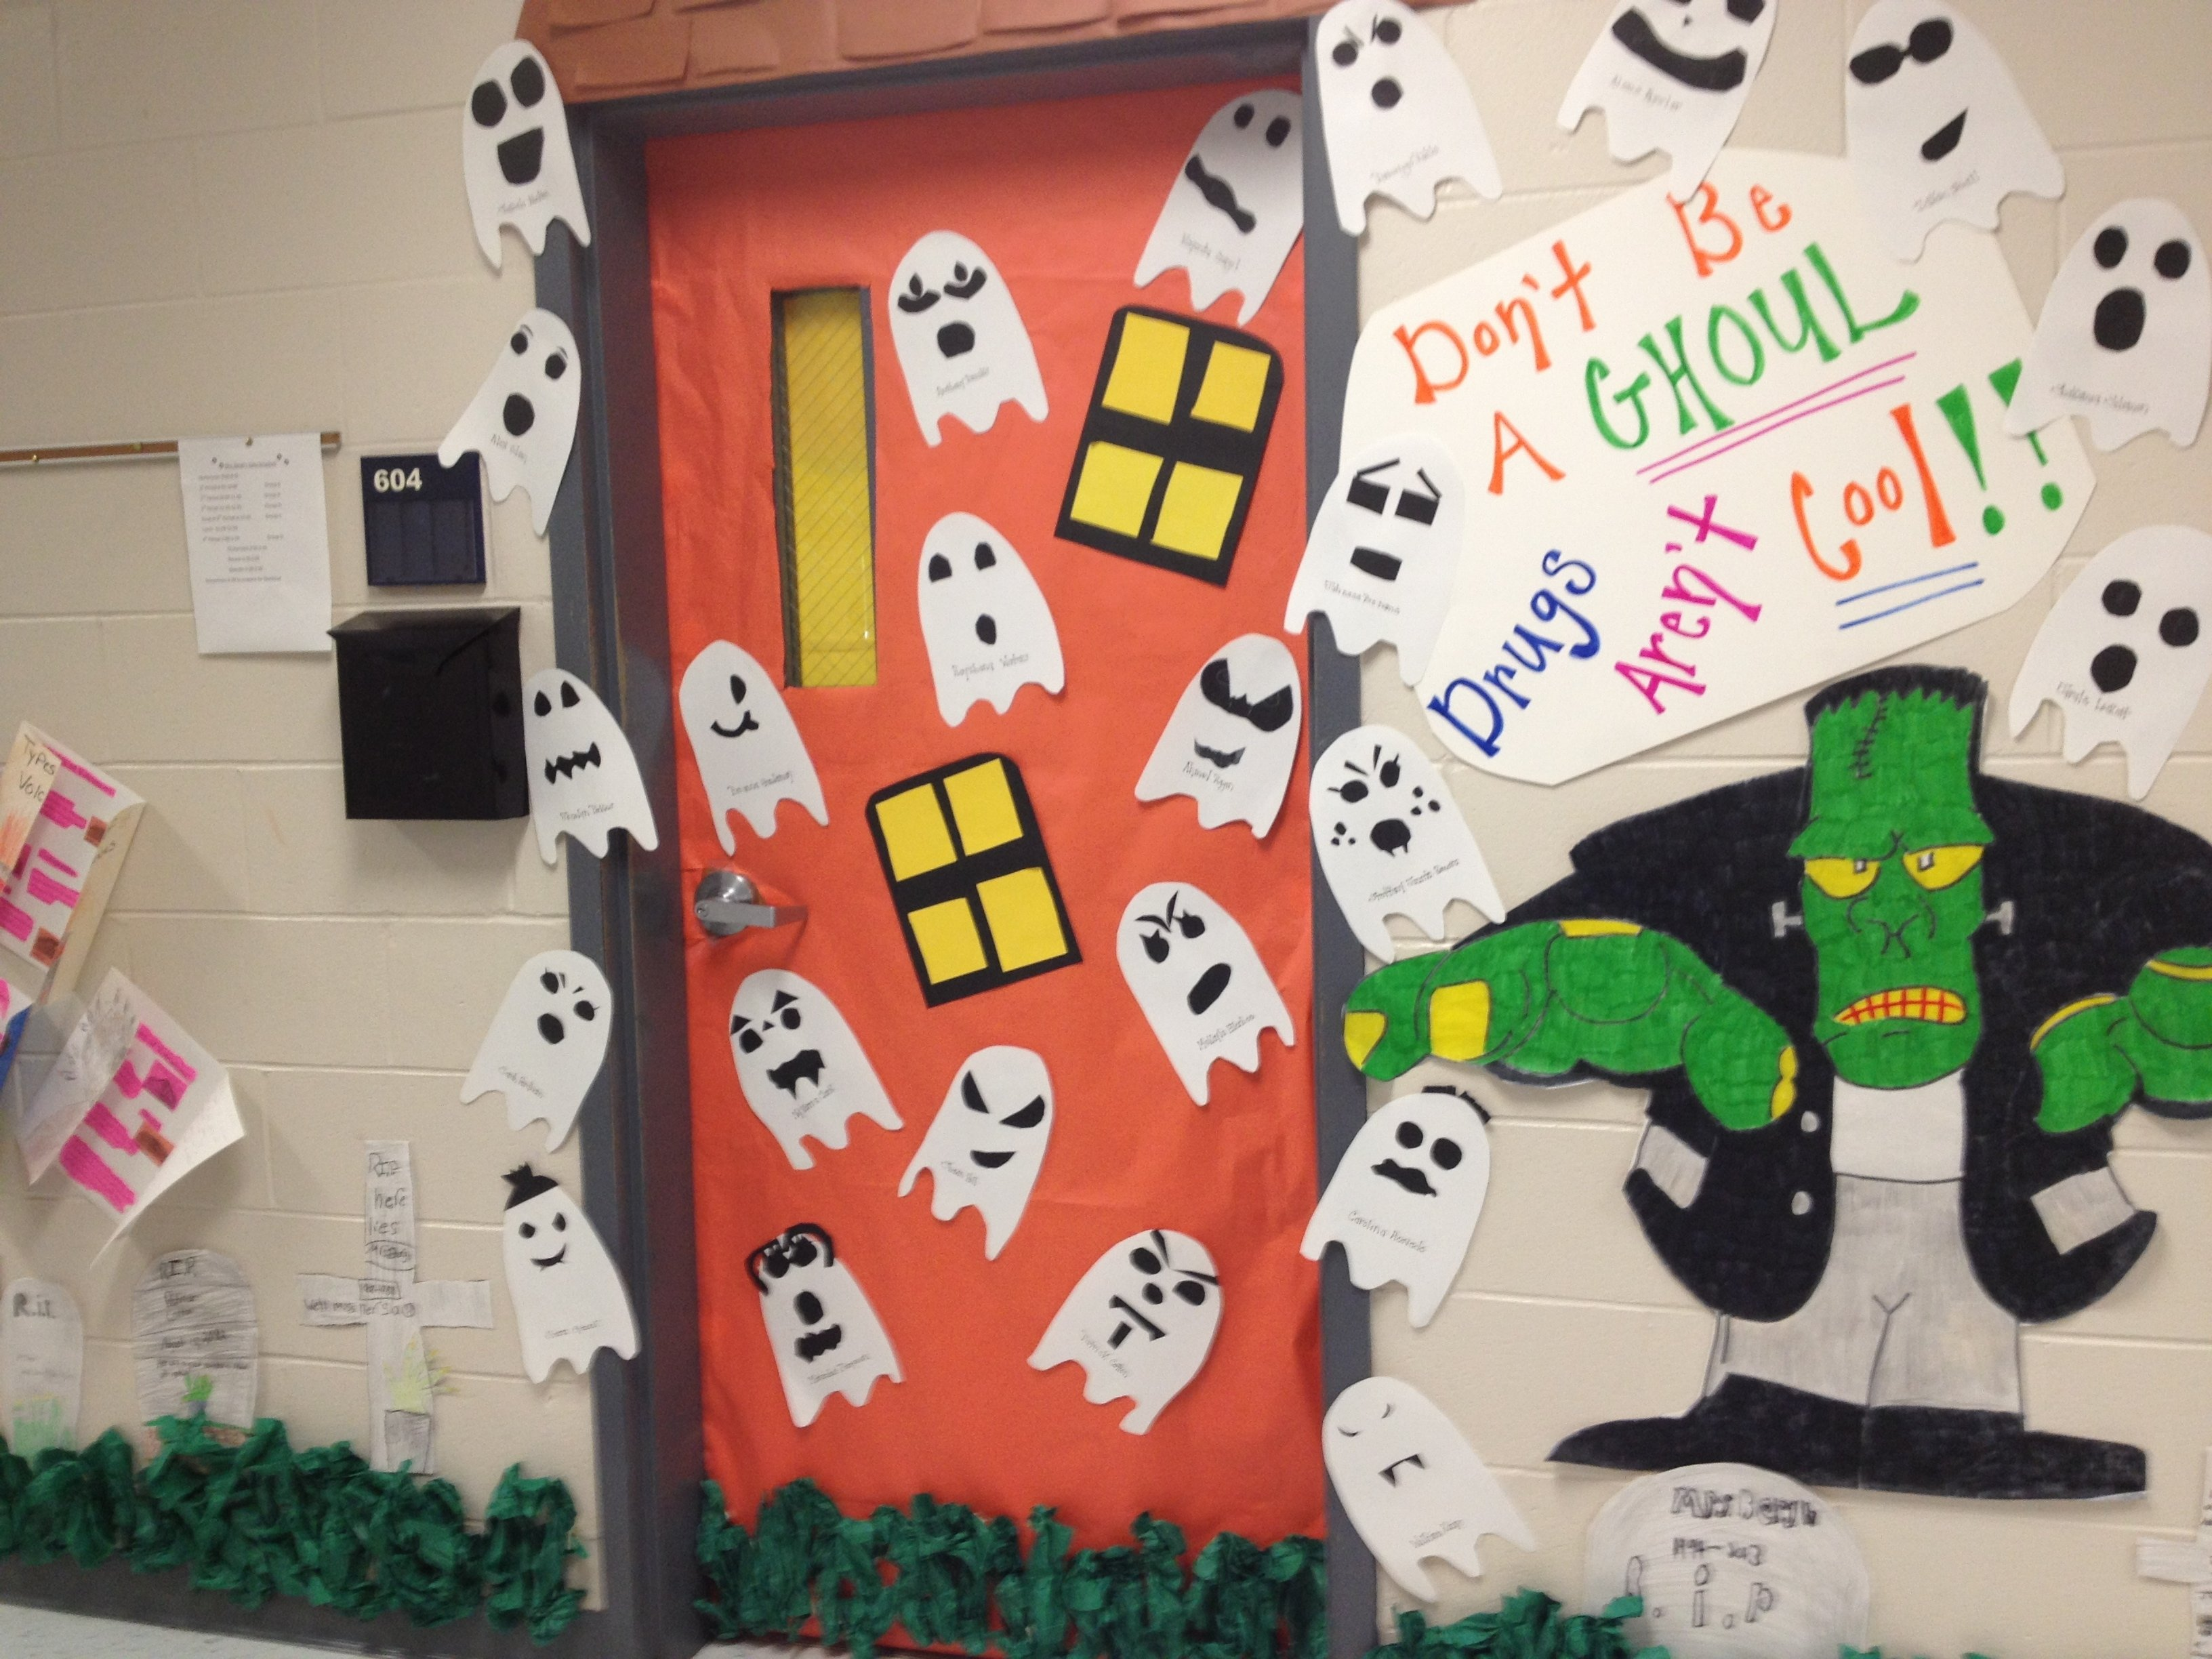 10 Great Red Ribbon Week Door Decorating Ideas red ribbon week drawing ideas drawing sketch picture 1 2020